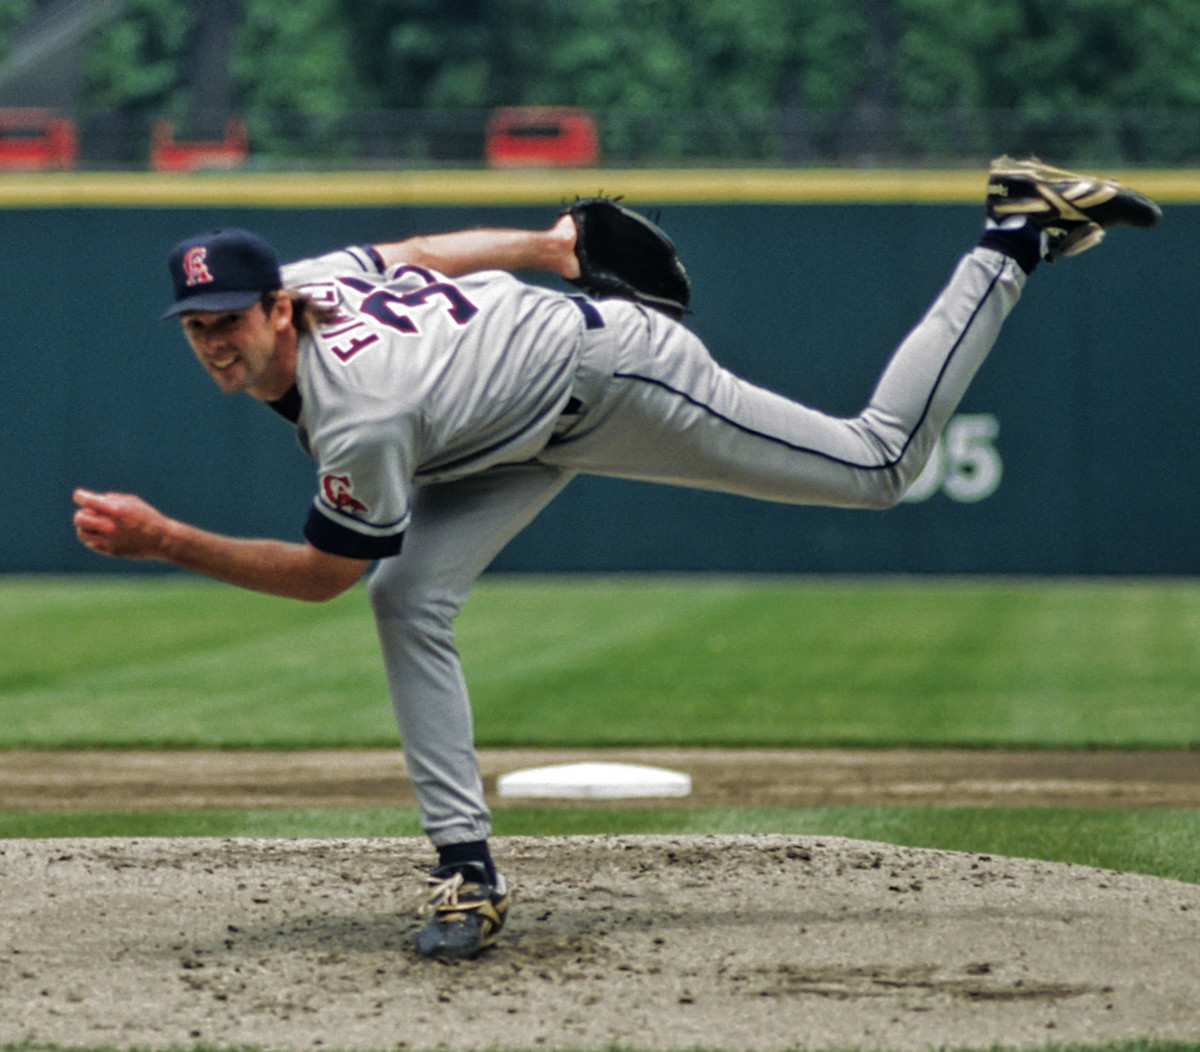 Chuck Finley never threw a no-hitter for the Angels, but did fire a one-hitter against Boston in 1989. He is seen above pitching in 1996.